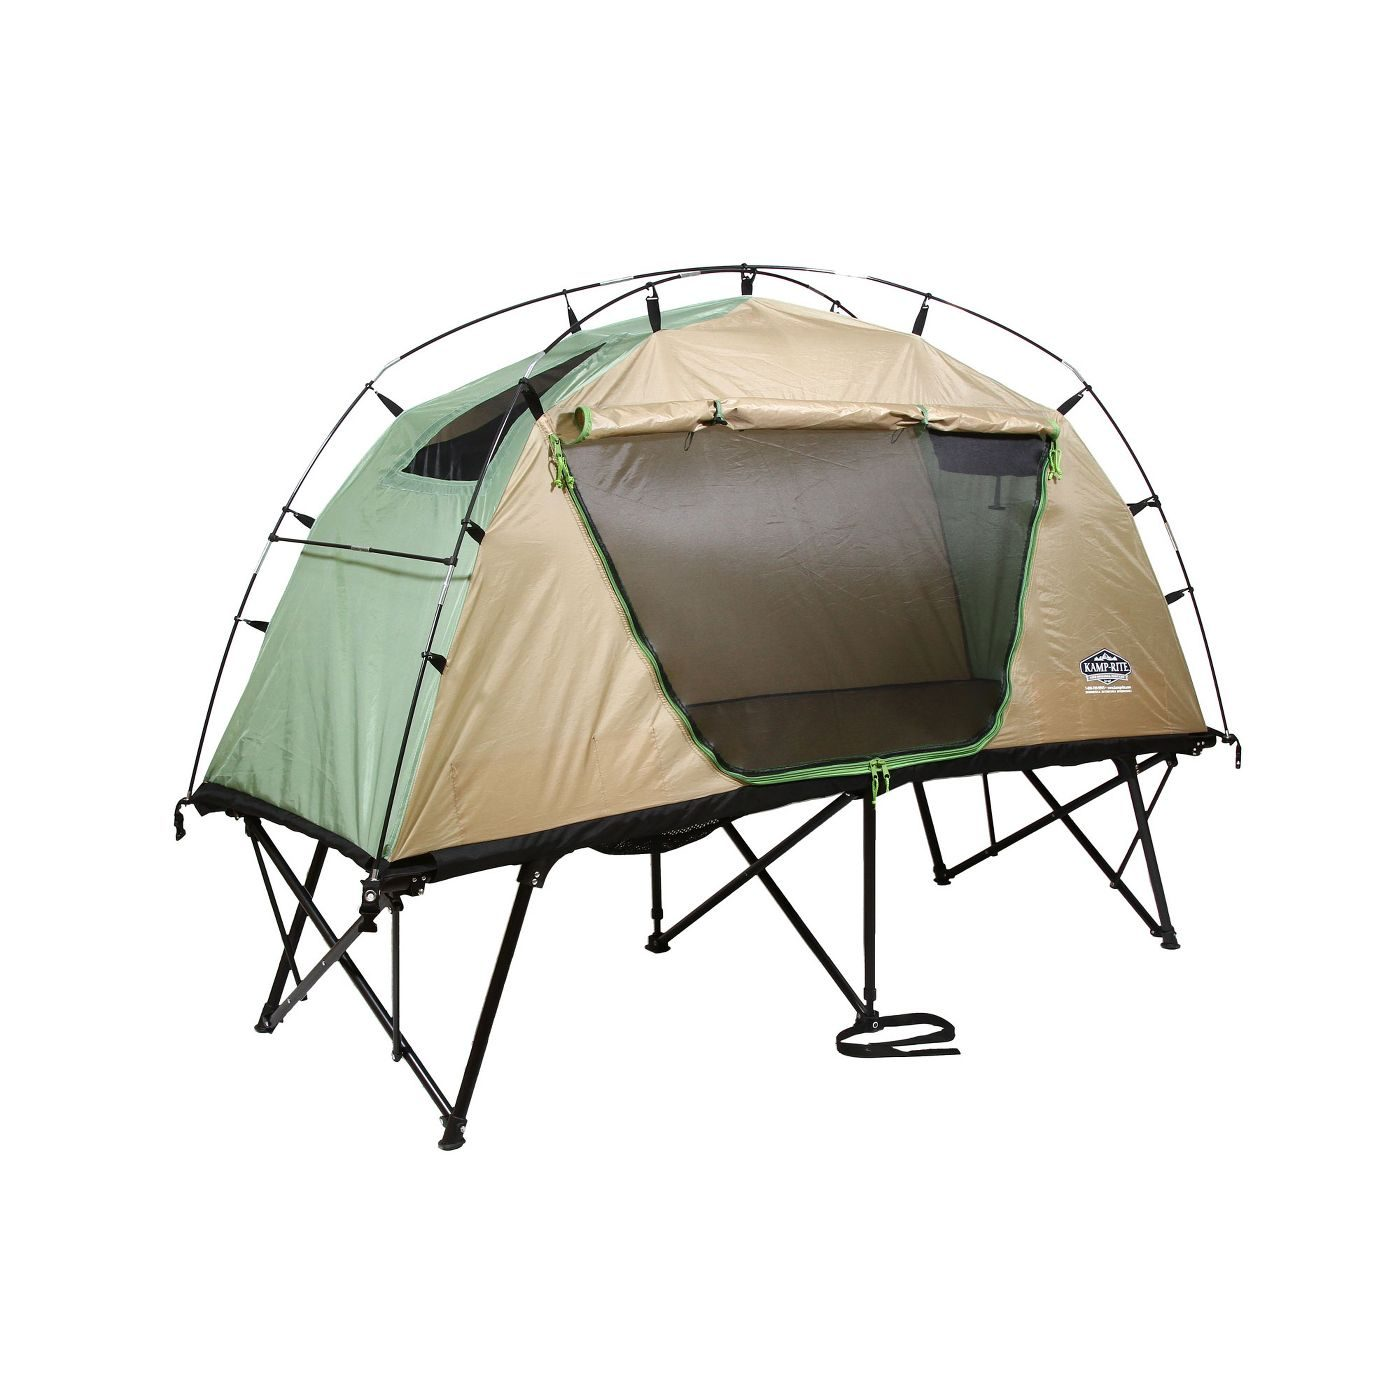 https://www.target.com/p/kamp-rite-ctc-standard-compact-collapsible-backpacking-camping-tent-cot-tan/-/A-80311563